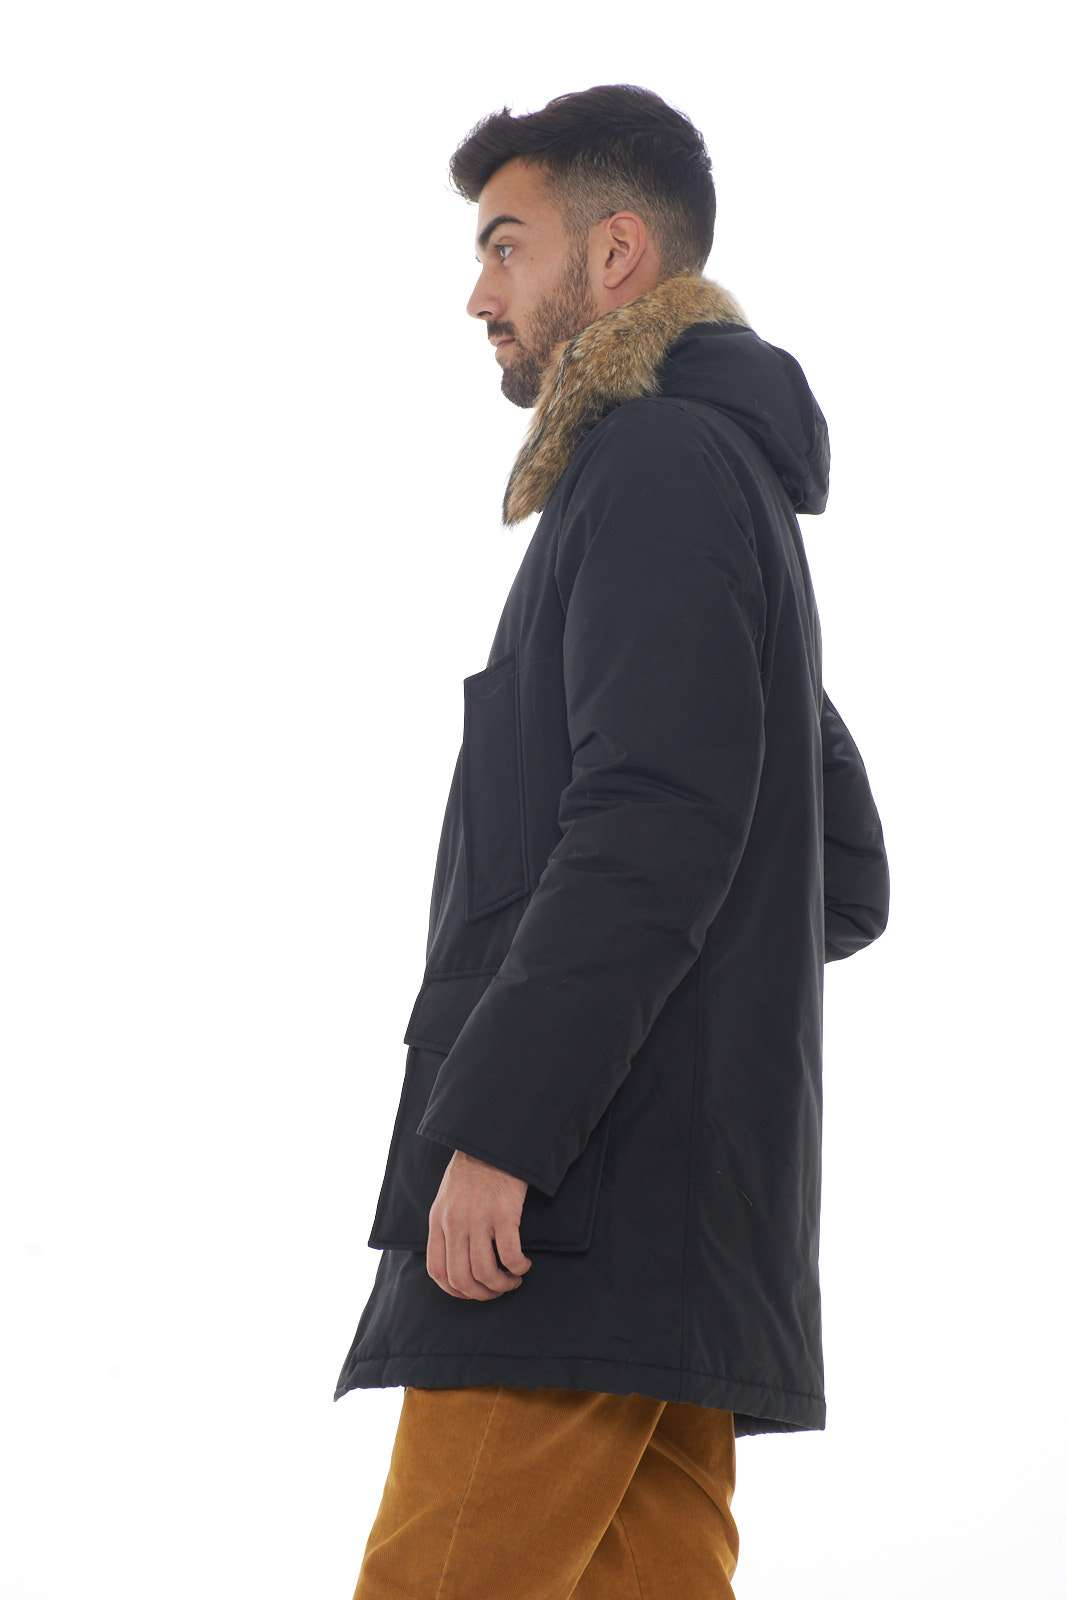 https://www.parmax.com/media/catalog/product/a/i/AI-outlet_parmax-parka-uomo-Woolrich-WOCPS2880-B.jpg